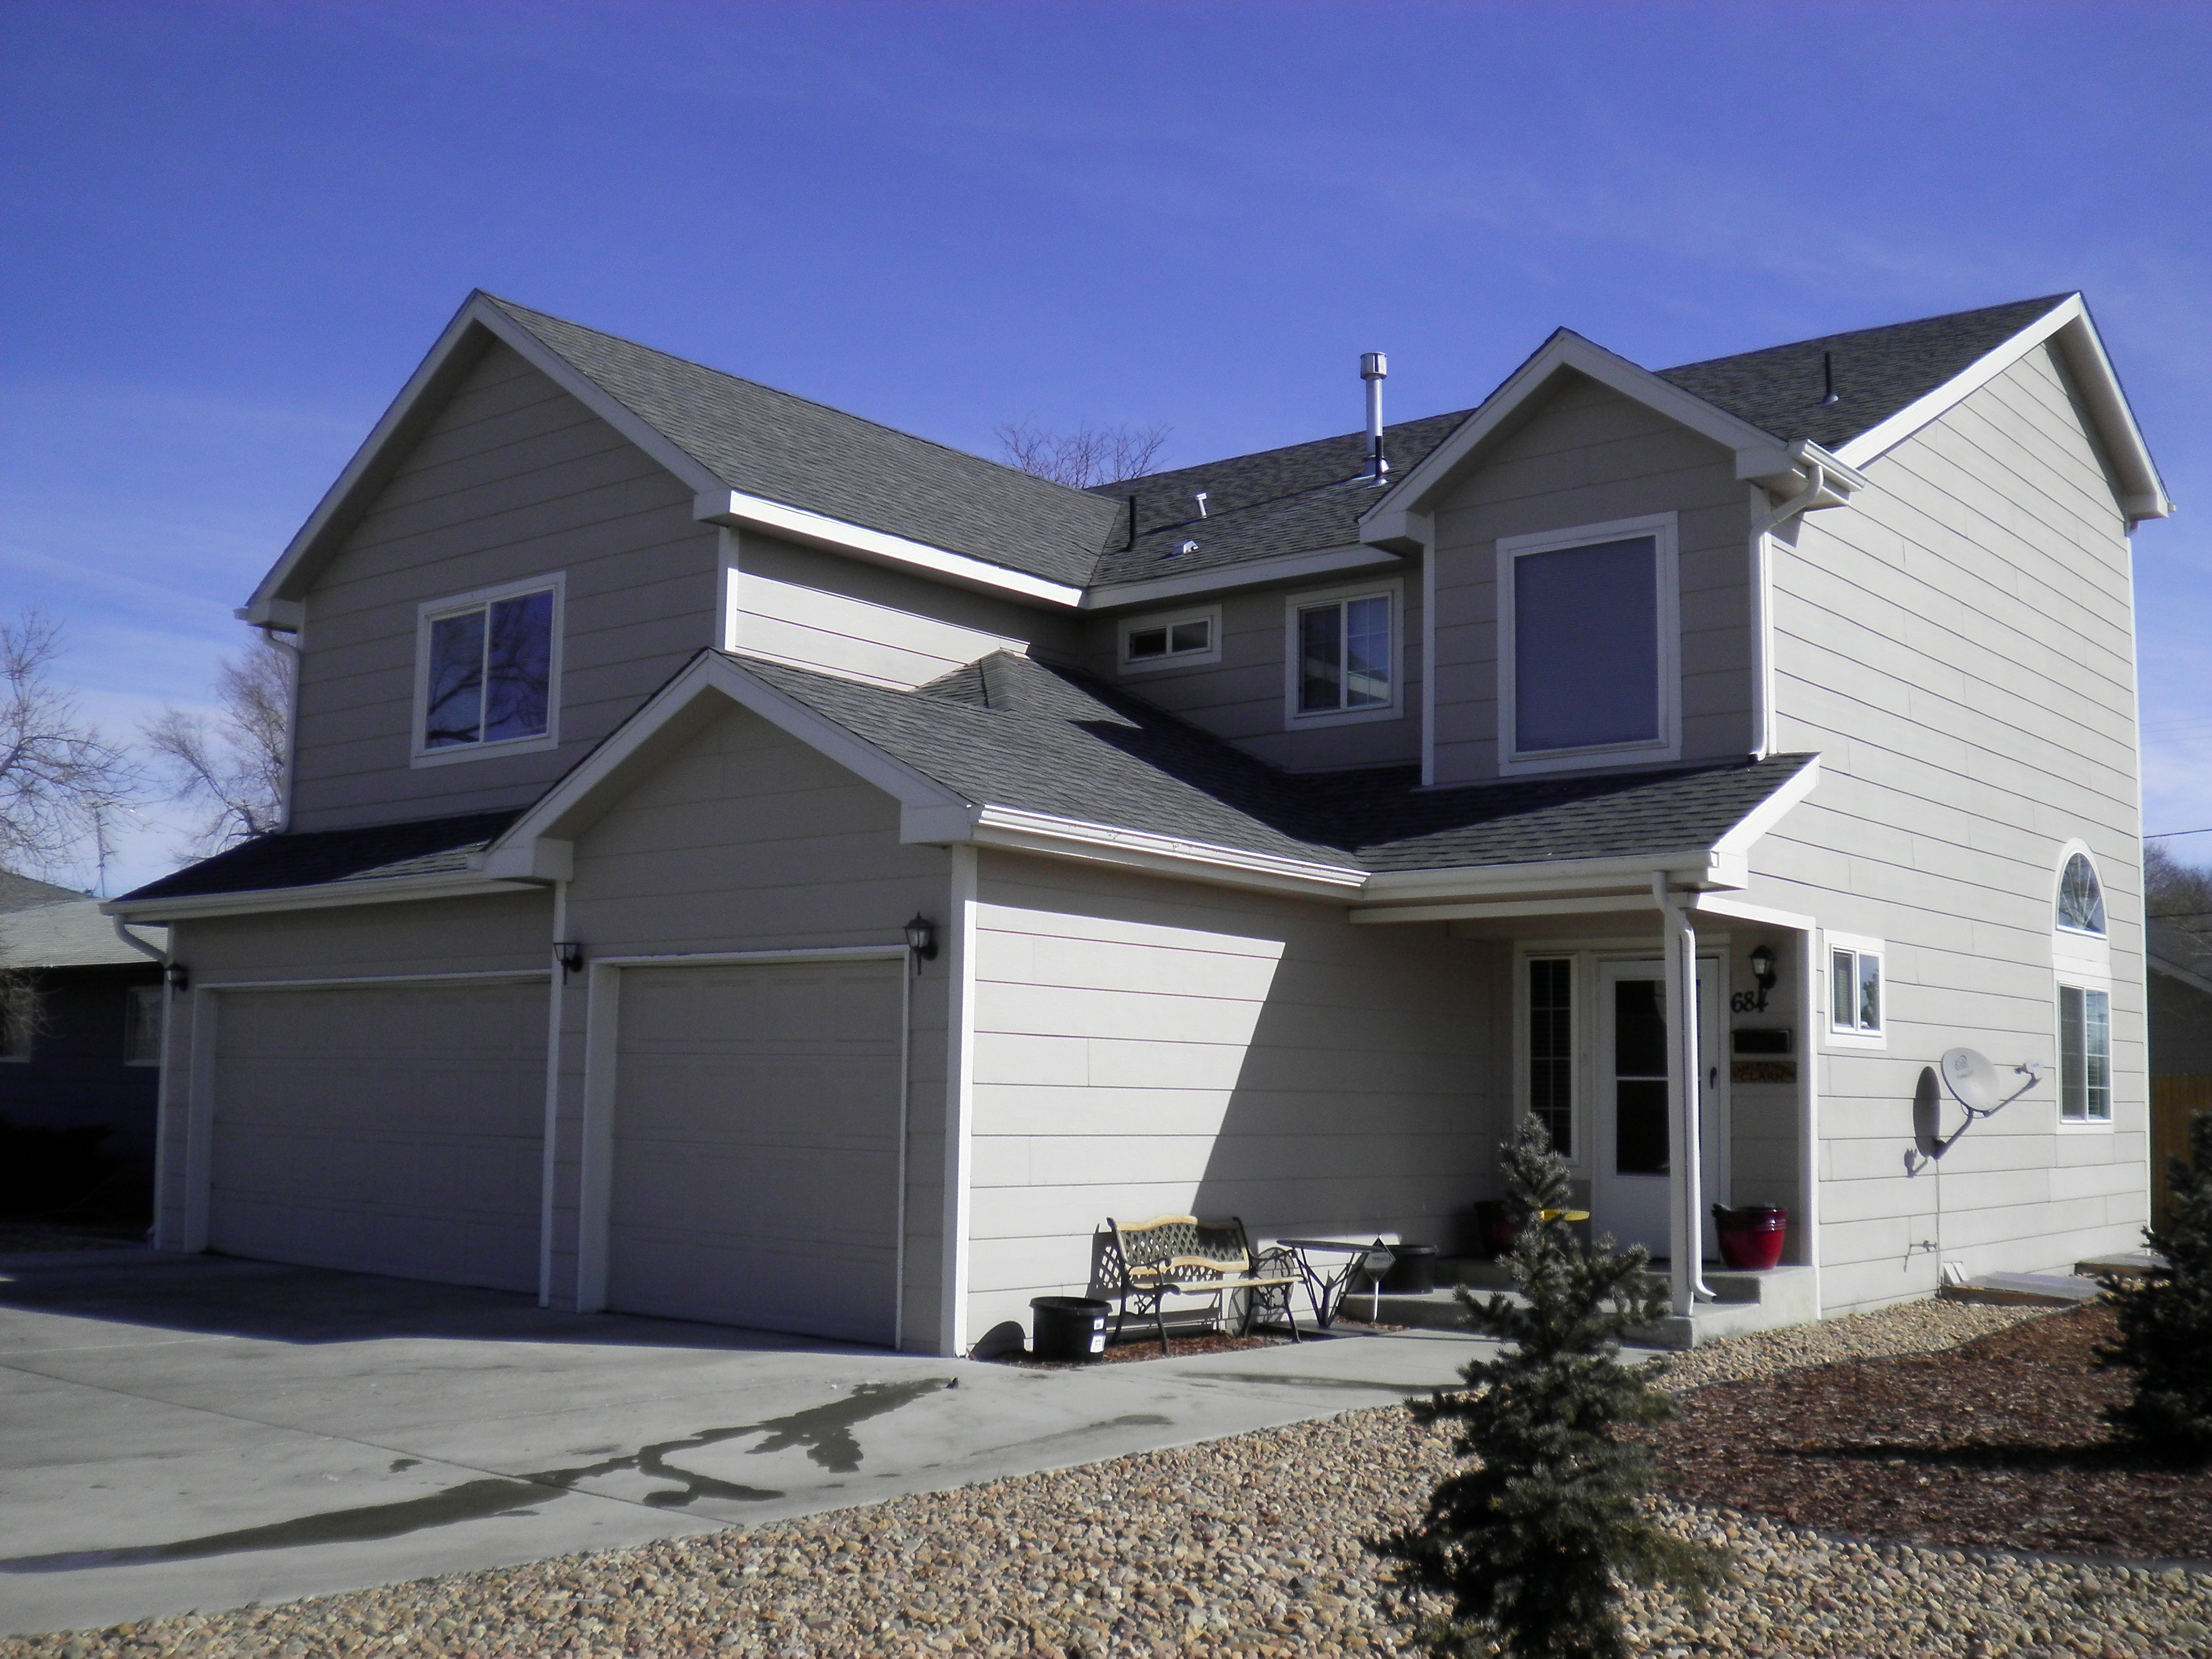 Brighton 2 story home broomfield co homes for sale blog for 2 story homes for sale